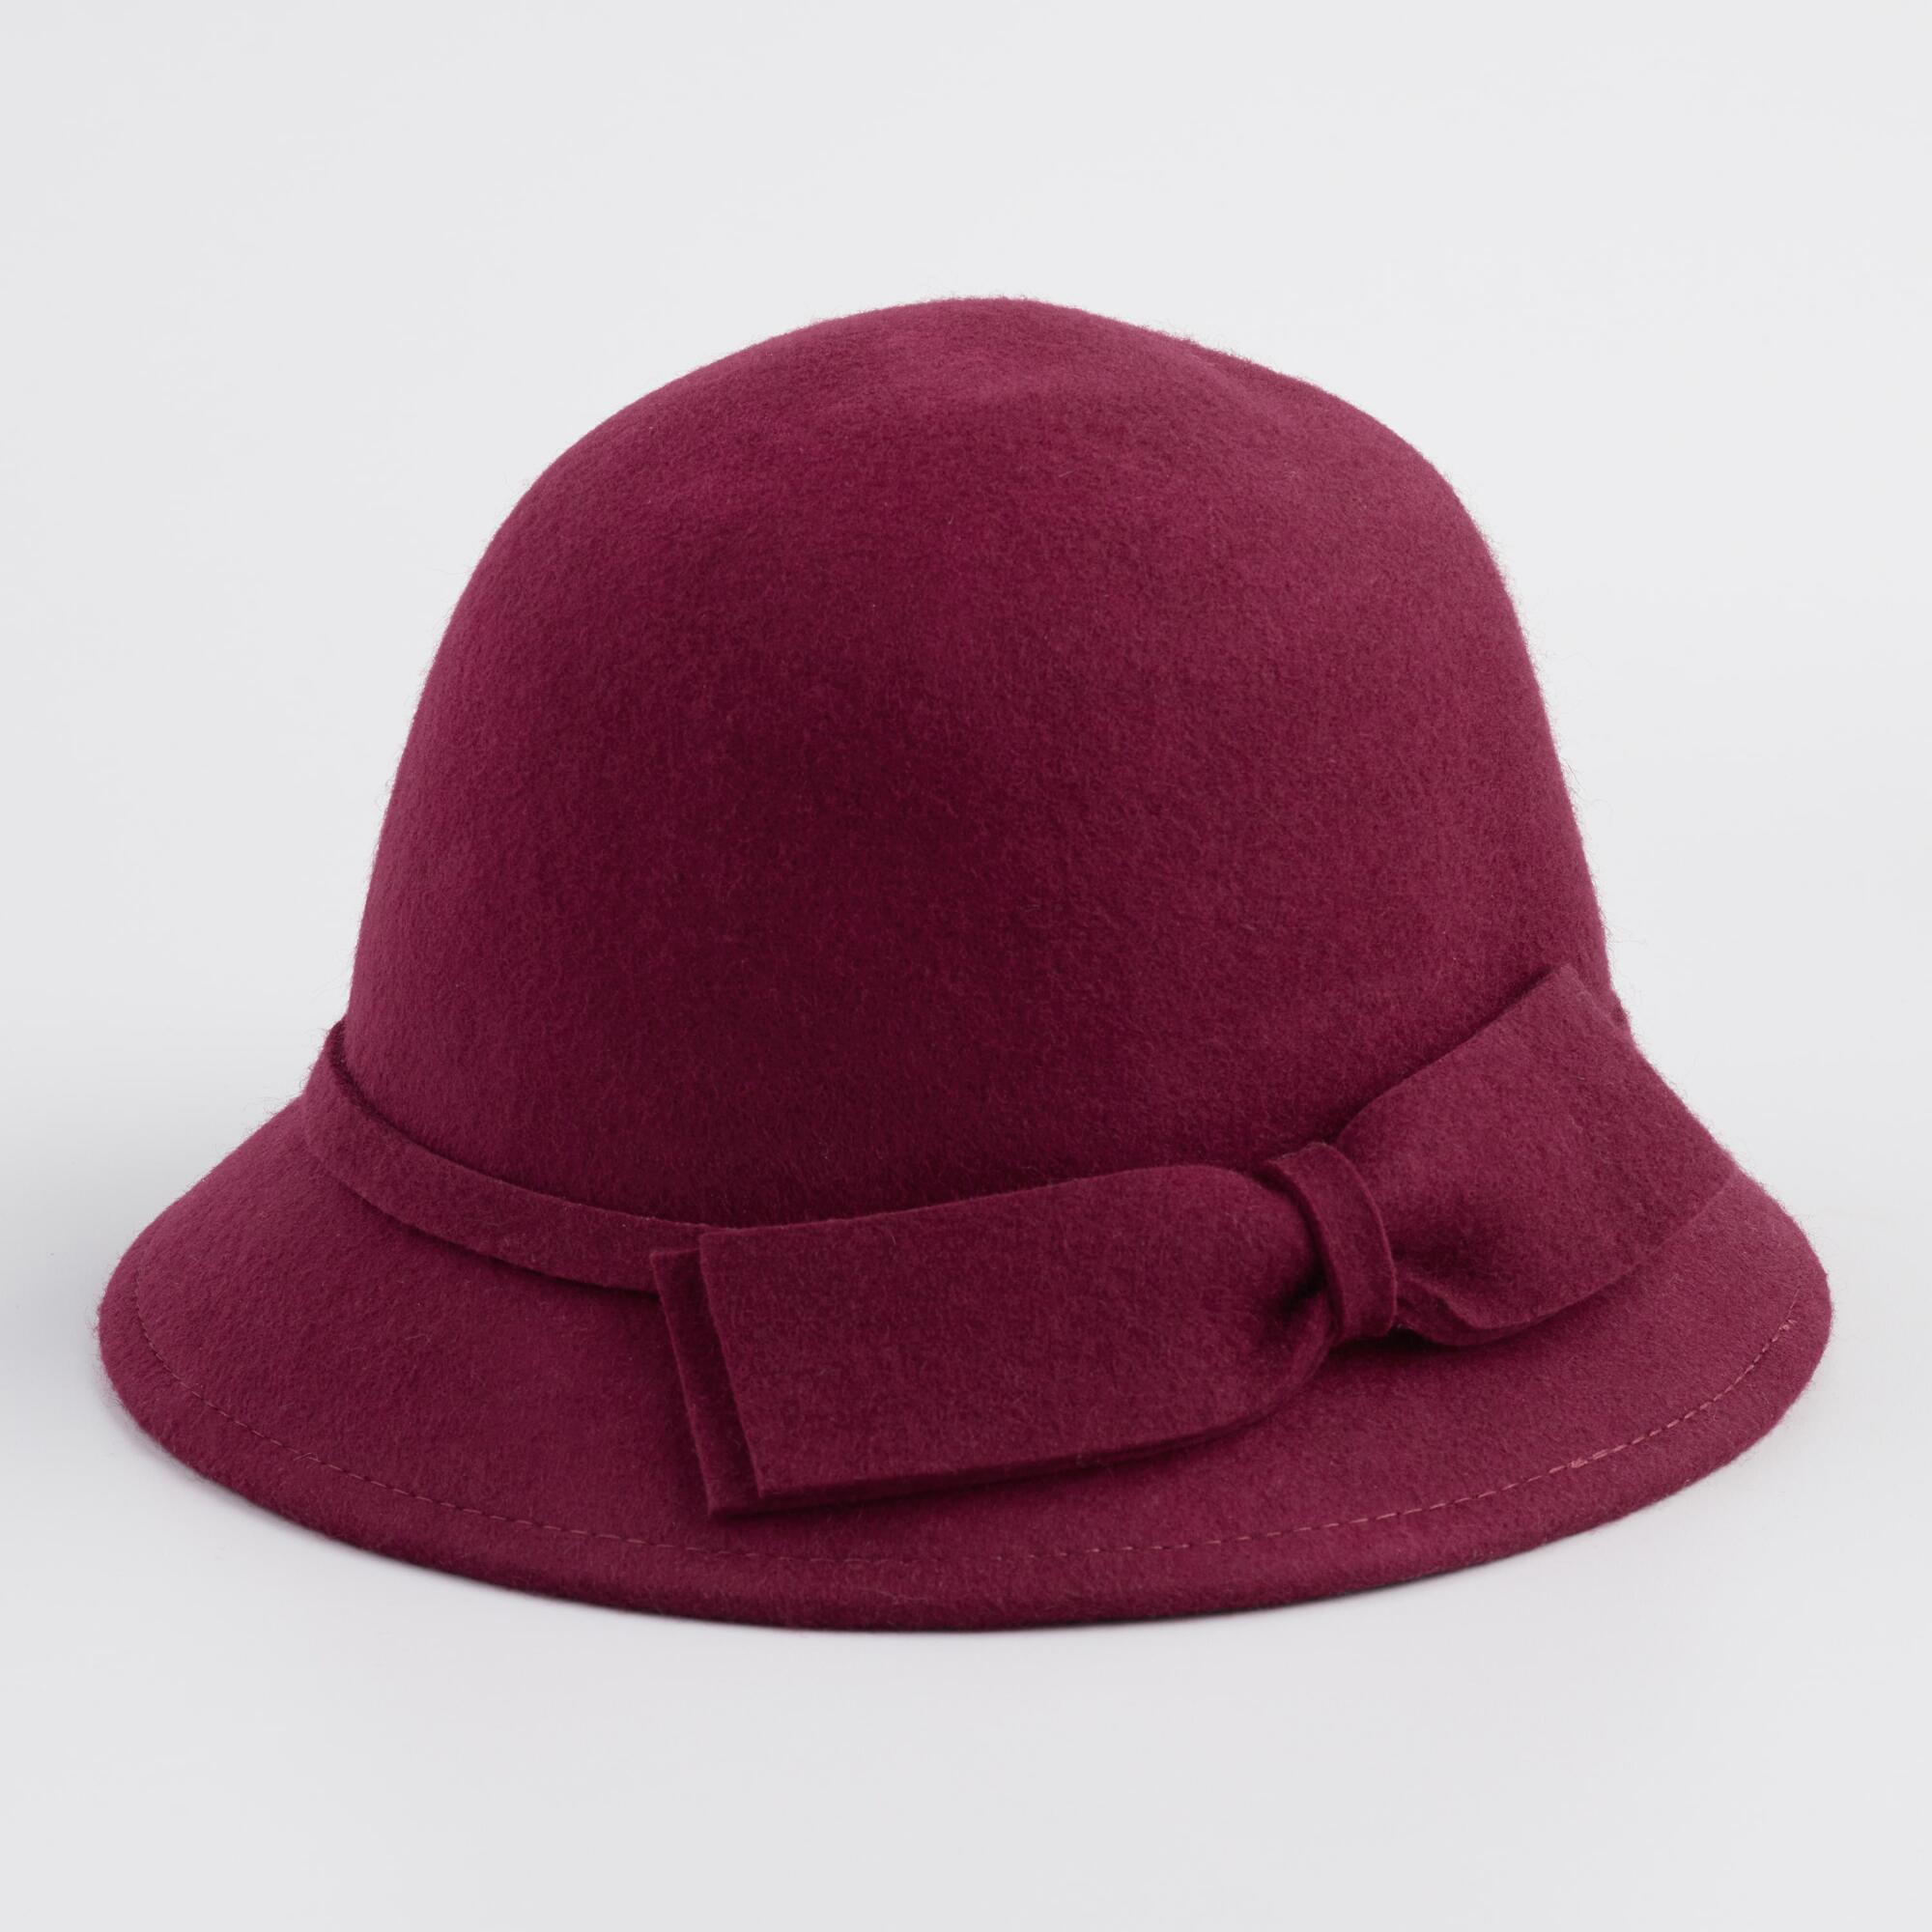 1920s Accessories | Great Gatsby Accessories Guide Wine Red Wool Cloche Hat by World Market $19.99 AT vintagedancer.com